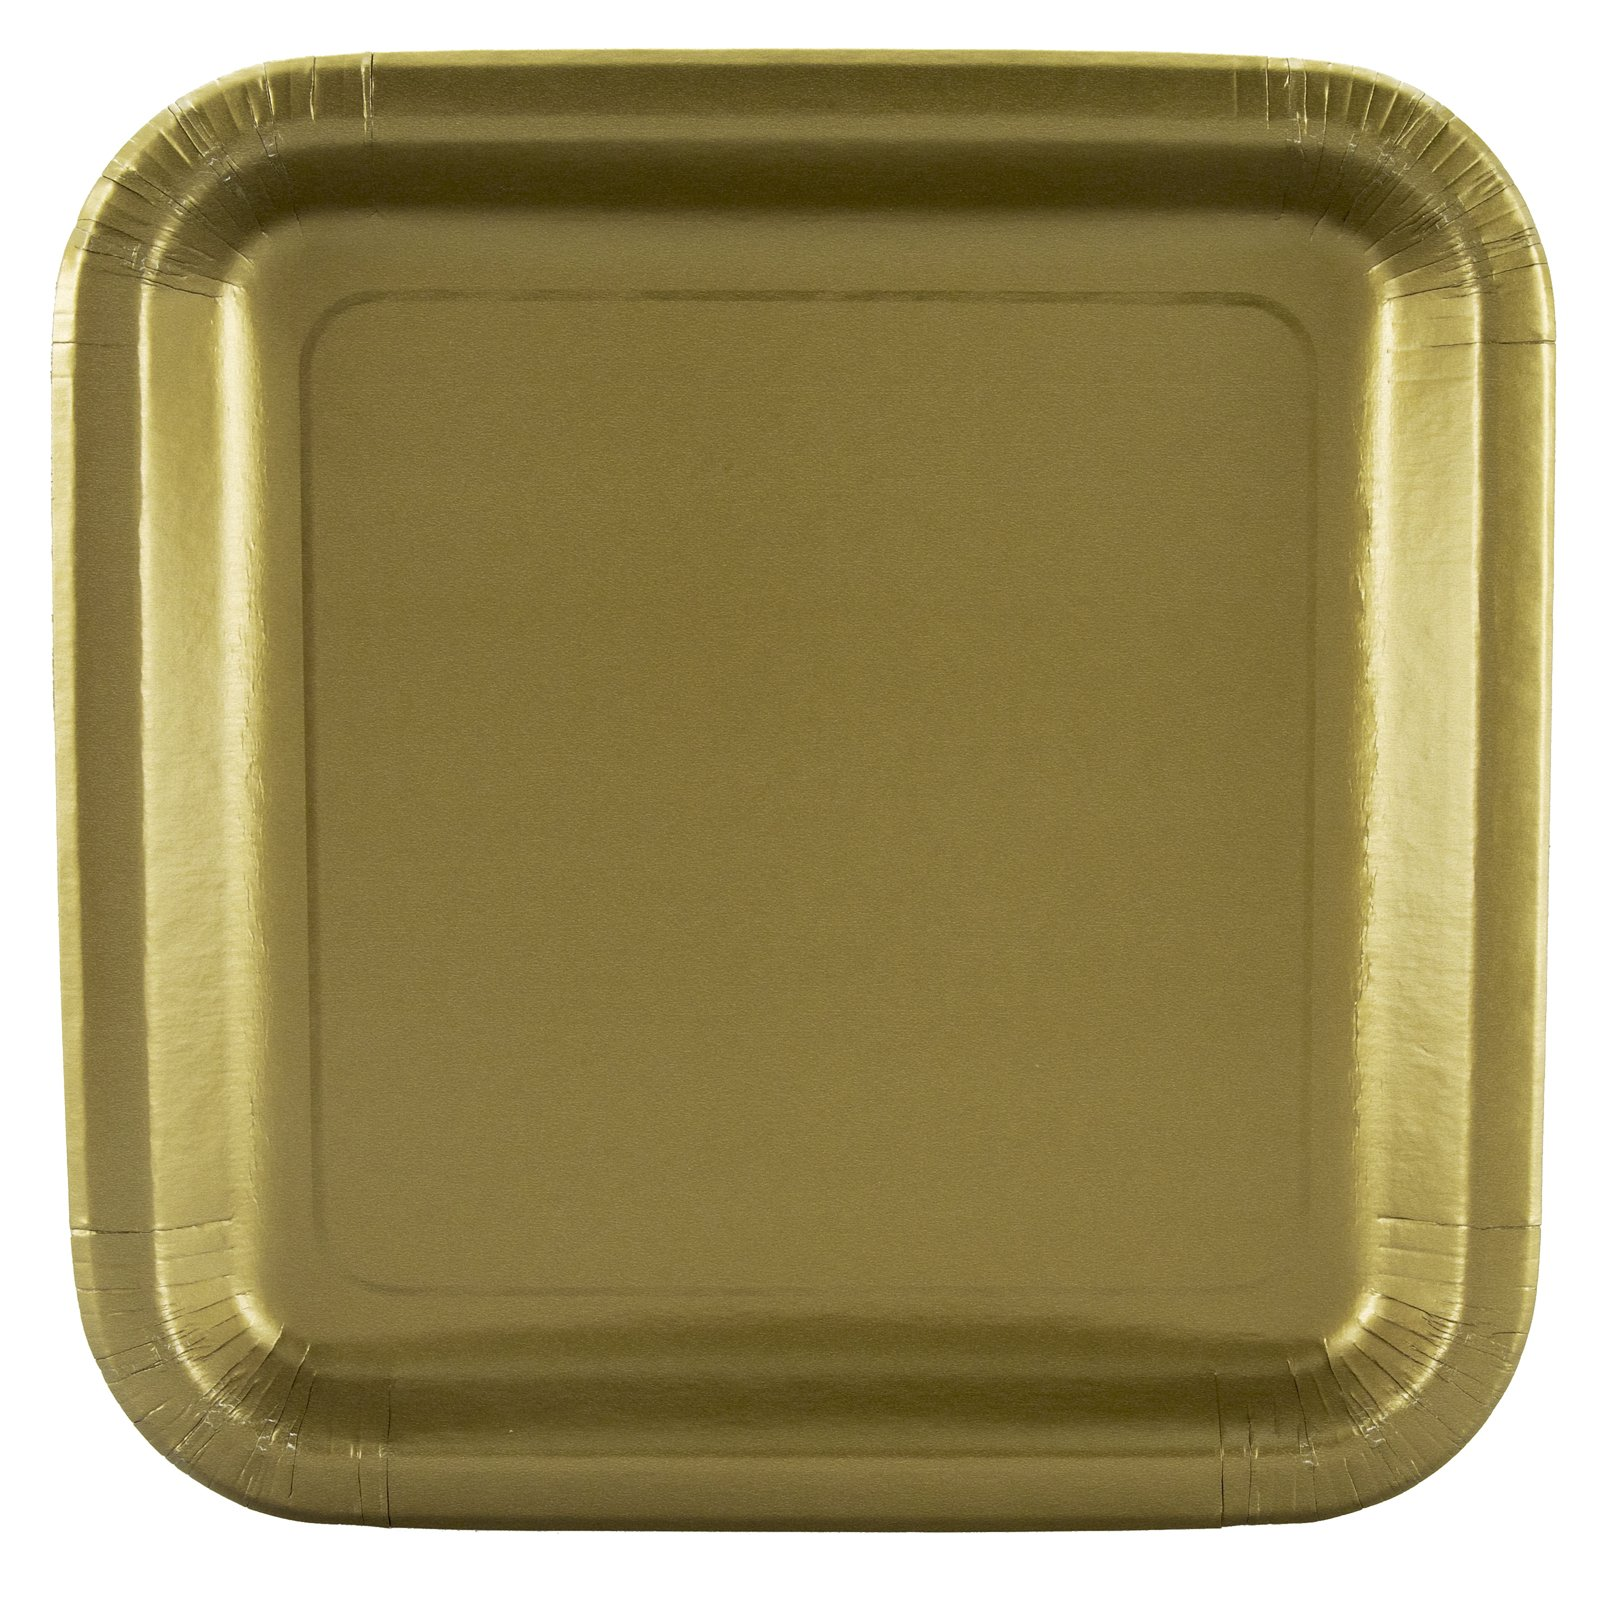 Gold Square Dinner Plates (12 count)